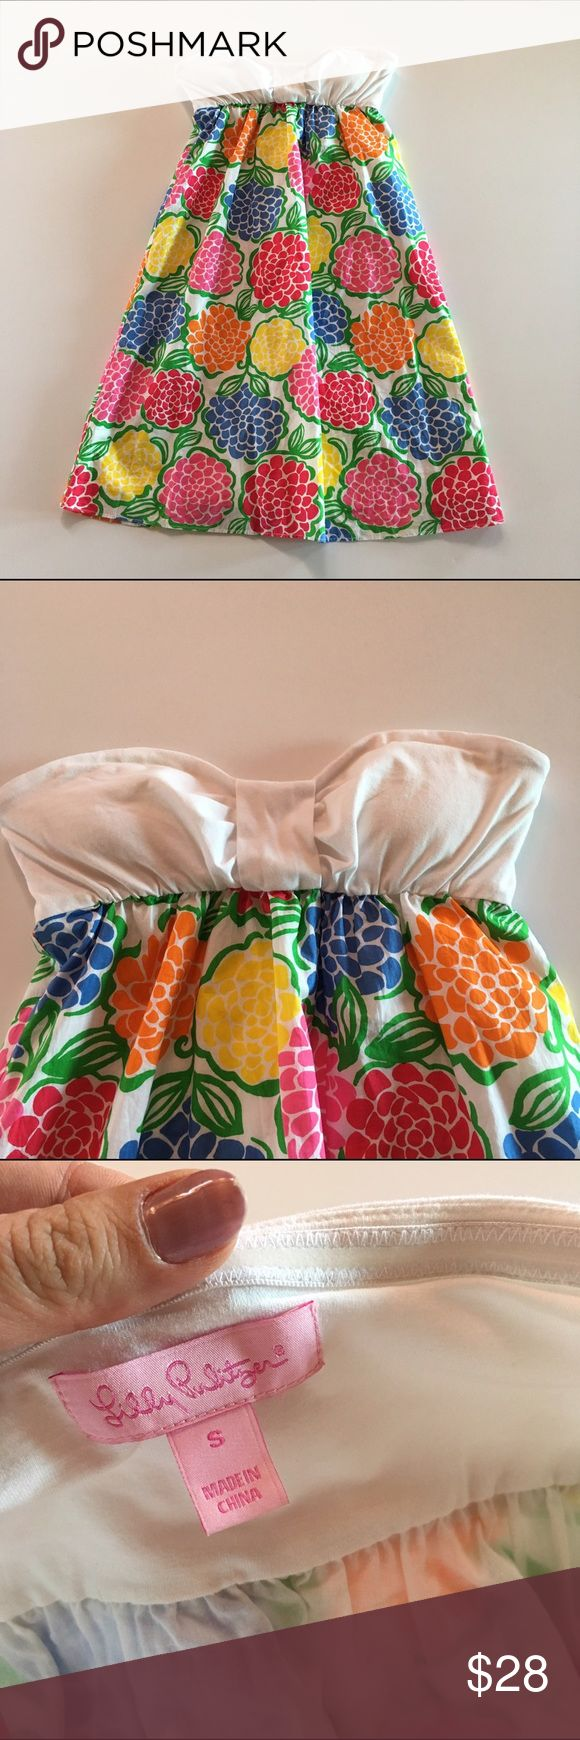 Lilly Pulitzer floral and white bandeau dress In great used condition, this cute bandeau dress is cotton and light, bright and perfect for summer or a vacation! Size small. Bust 29, length 28.5. Very tiny discoloration spot on top see photo. Lilly Pulitzer Dresses Mini